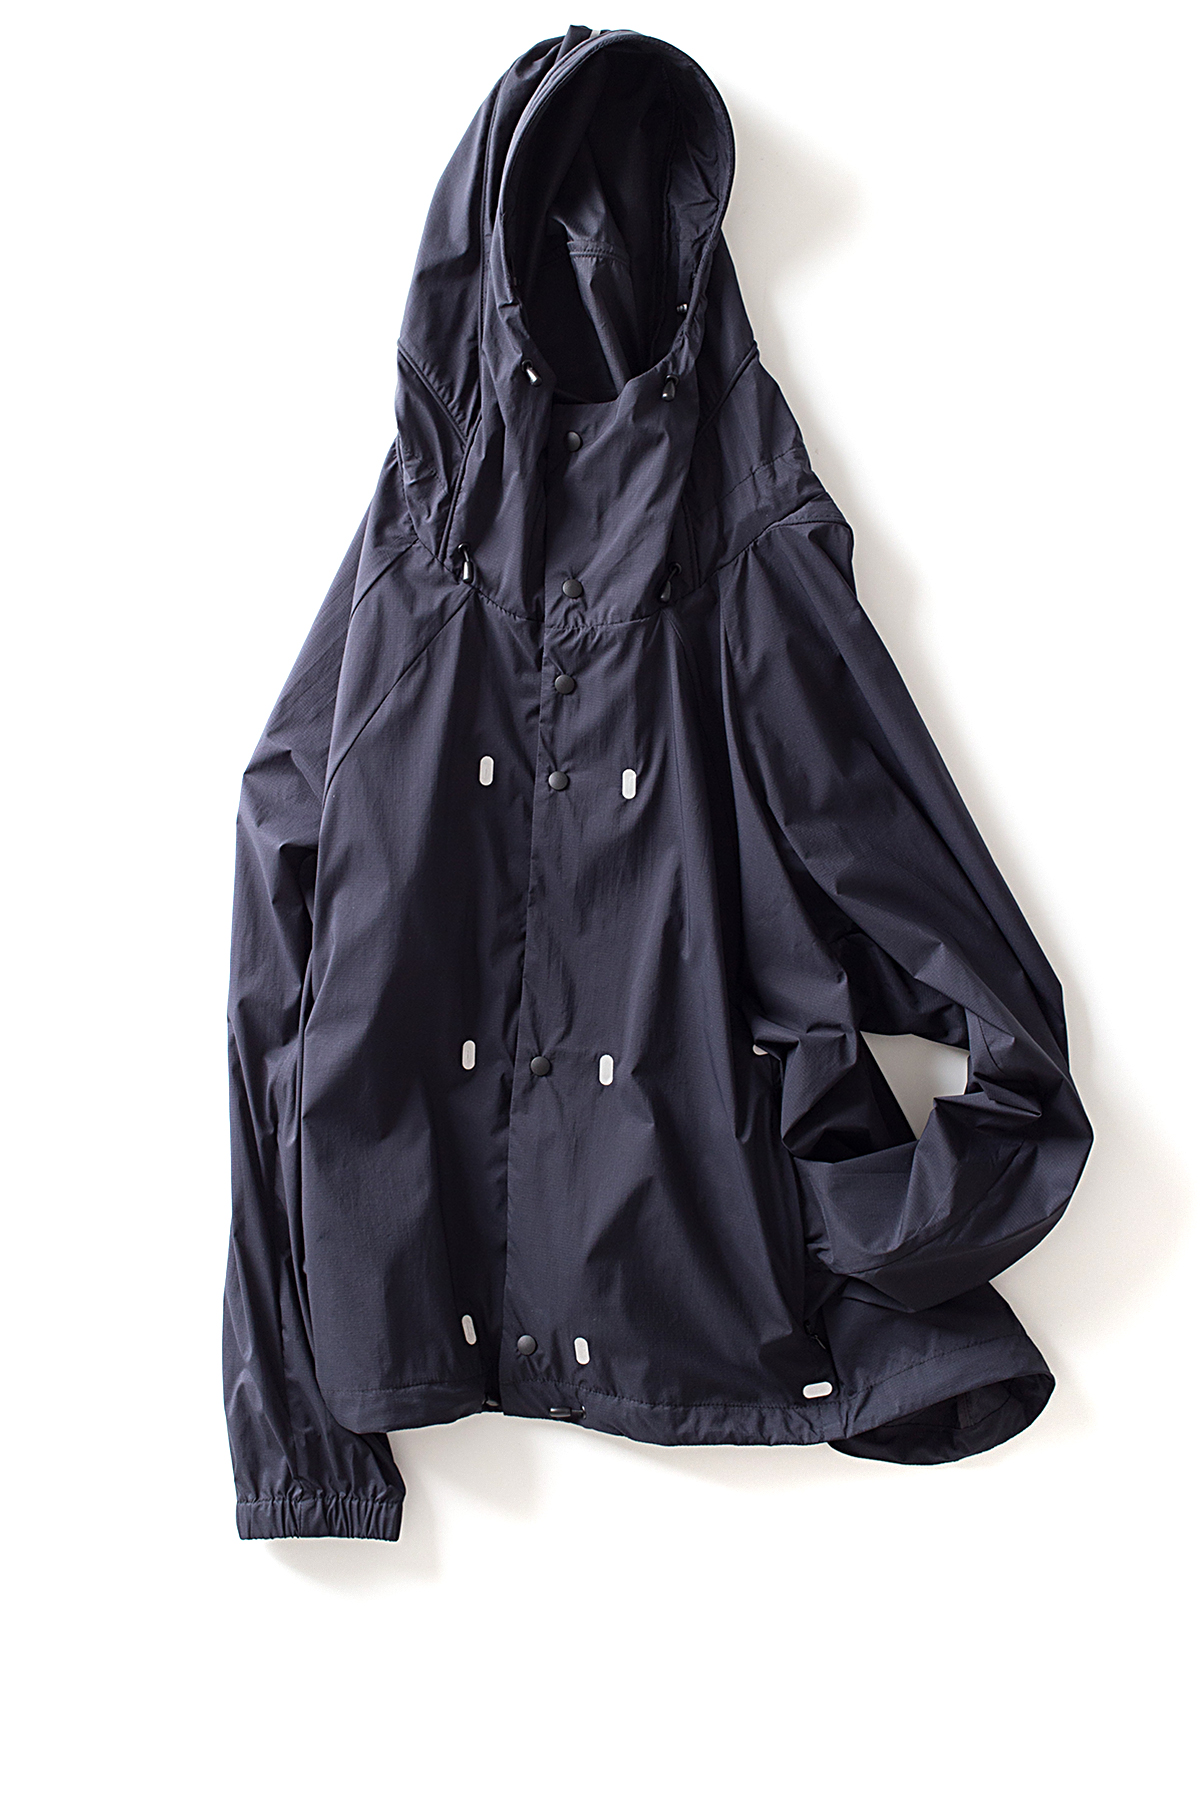 alk phenix : Dome Poncho / EPIC (Navy)